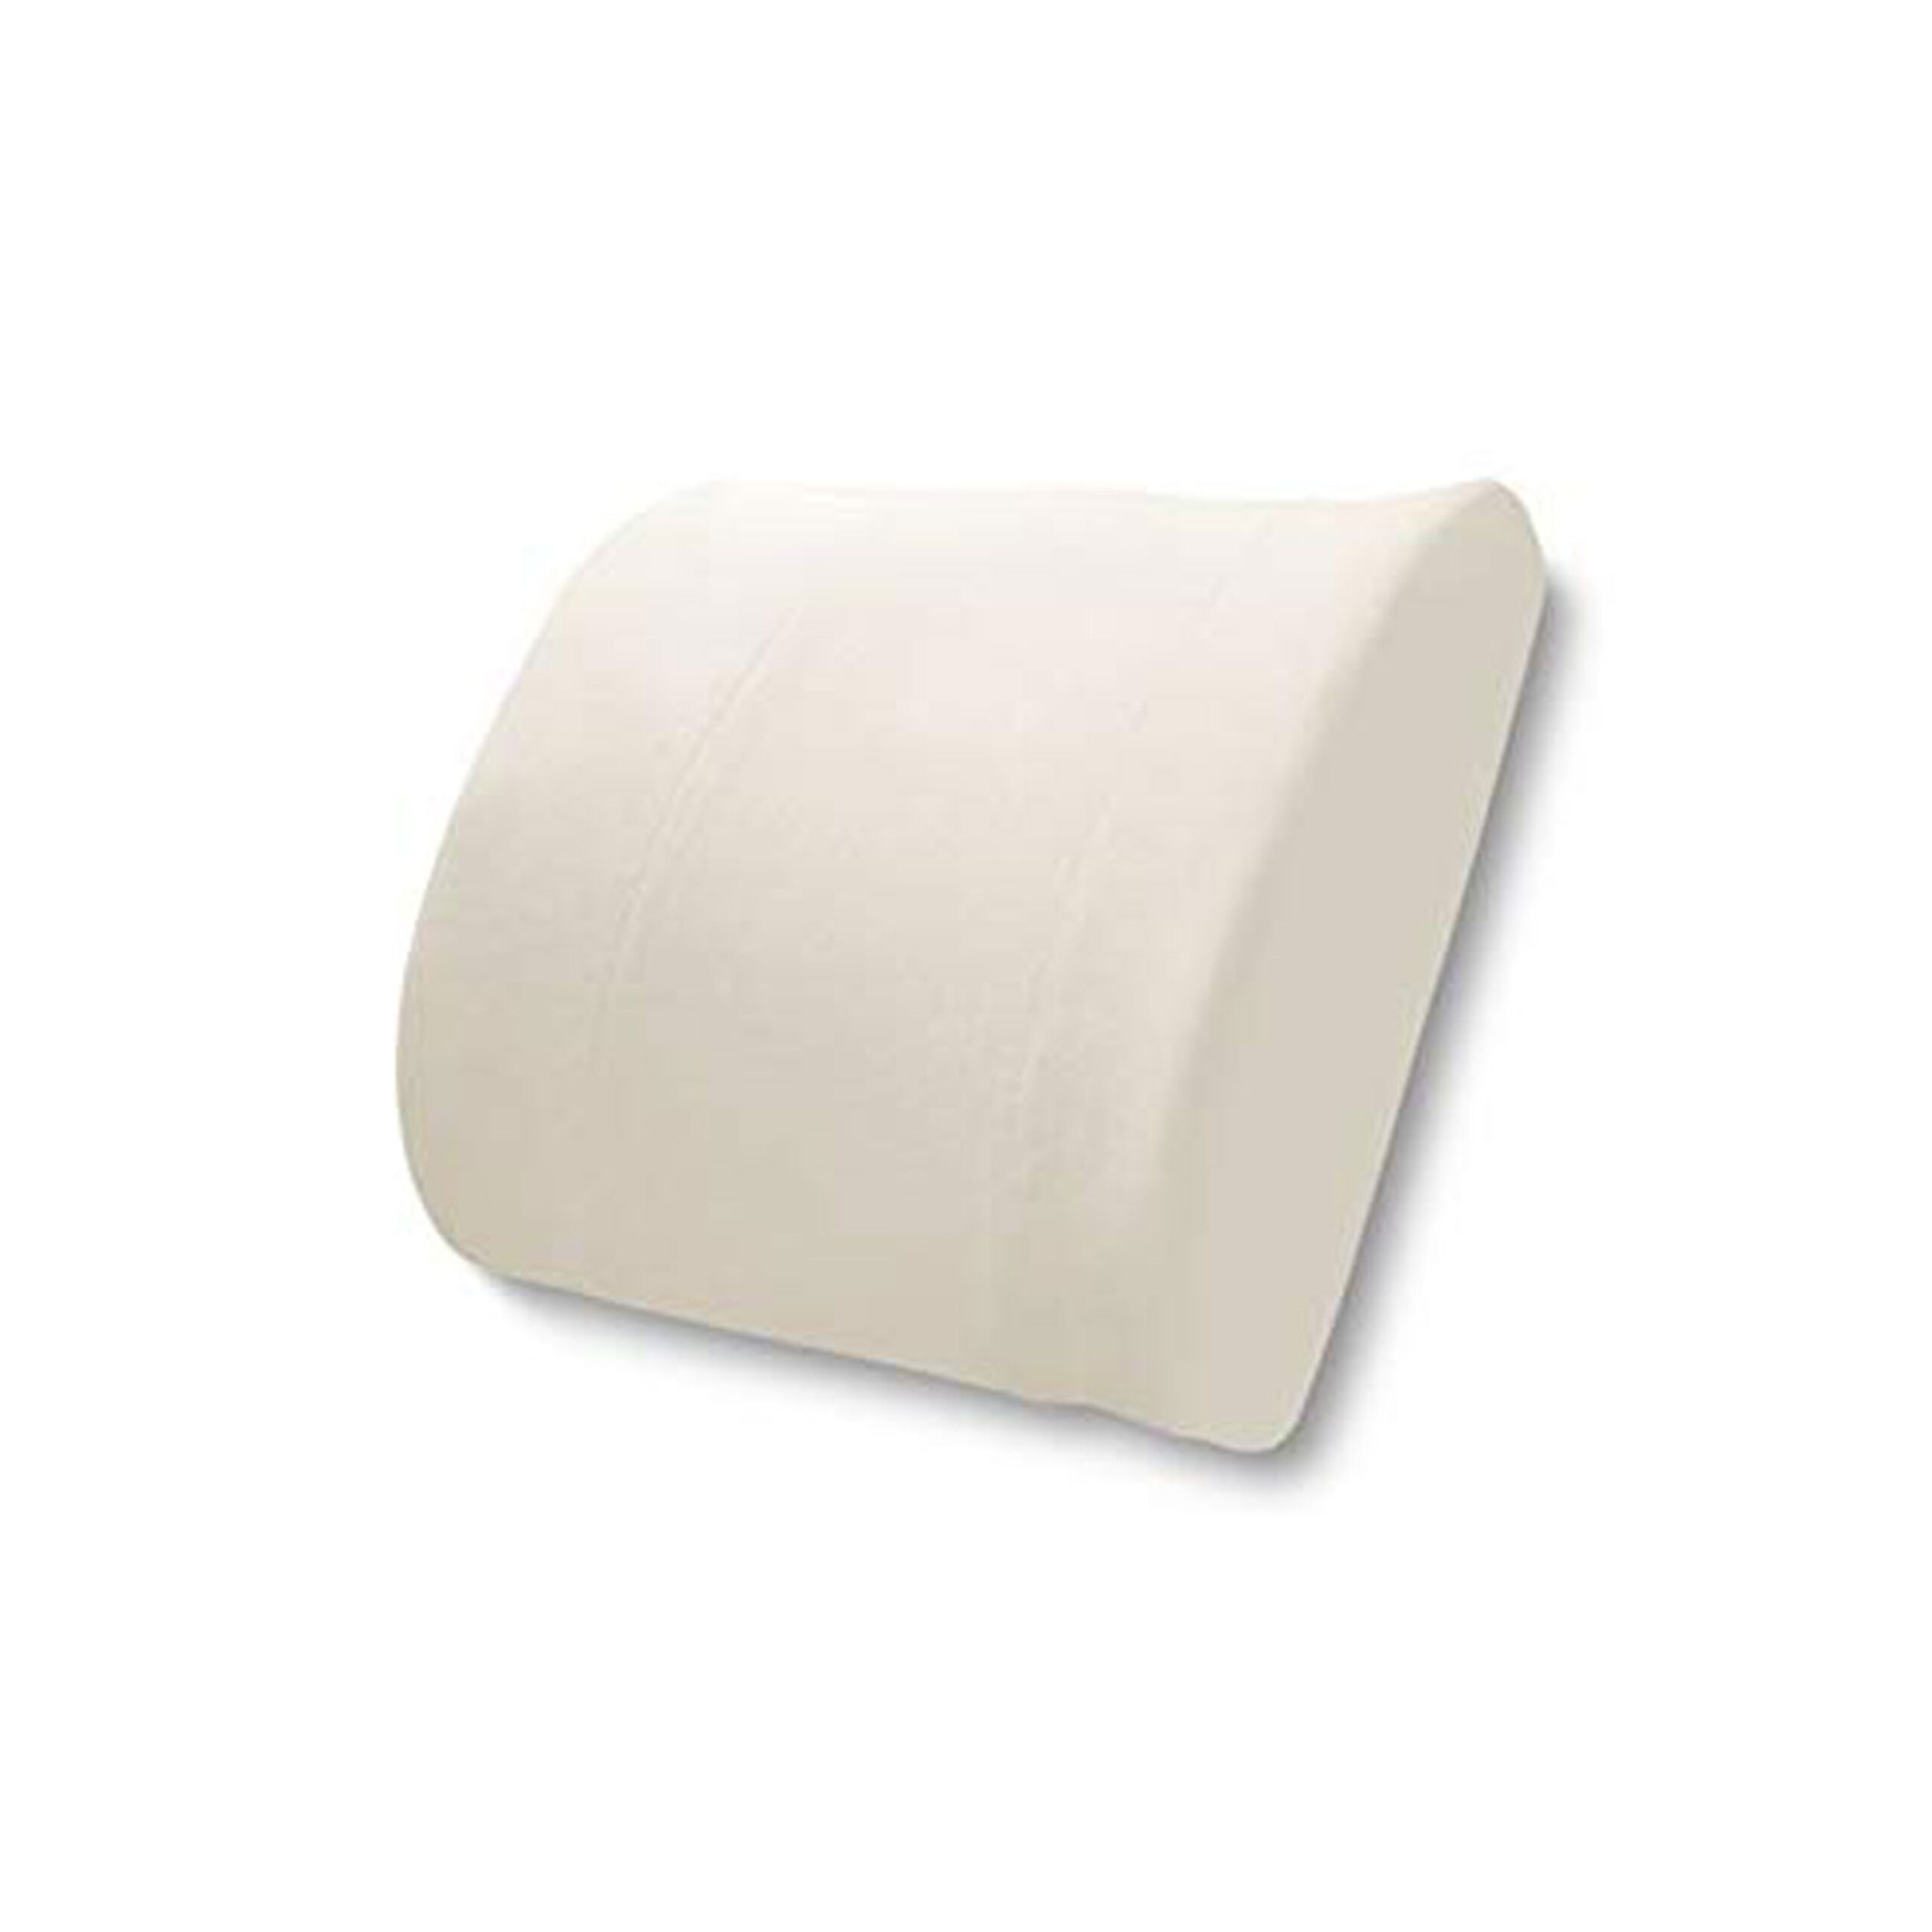 Thomsen Germany- Lumbar Pillows - Valentine's Day Special